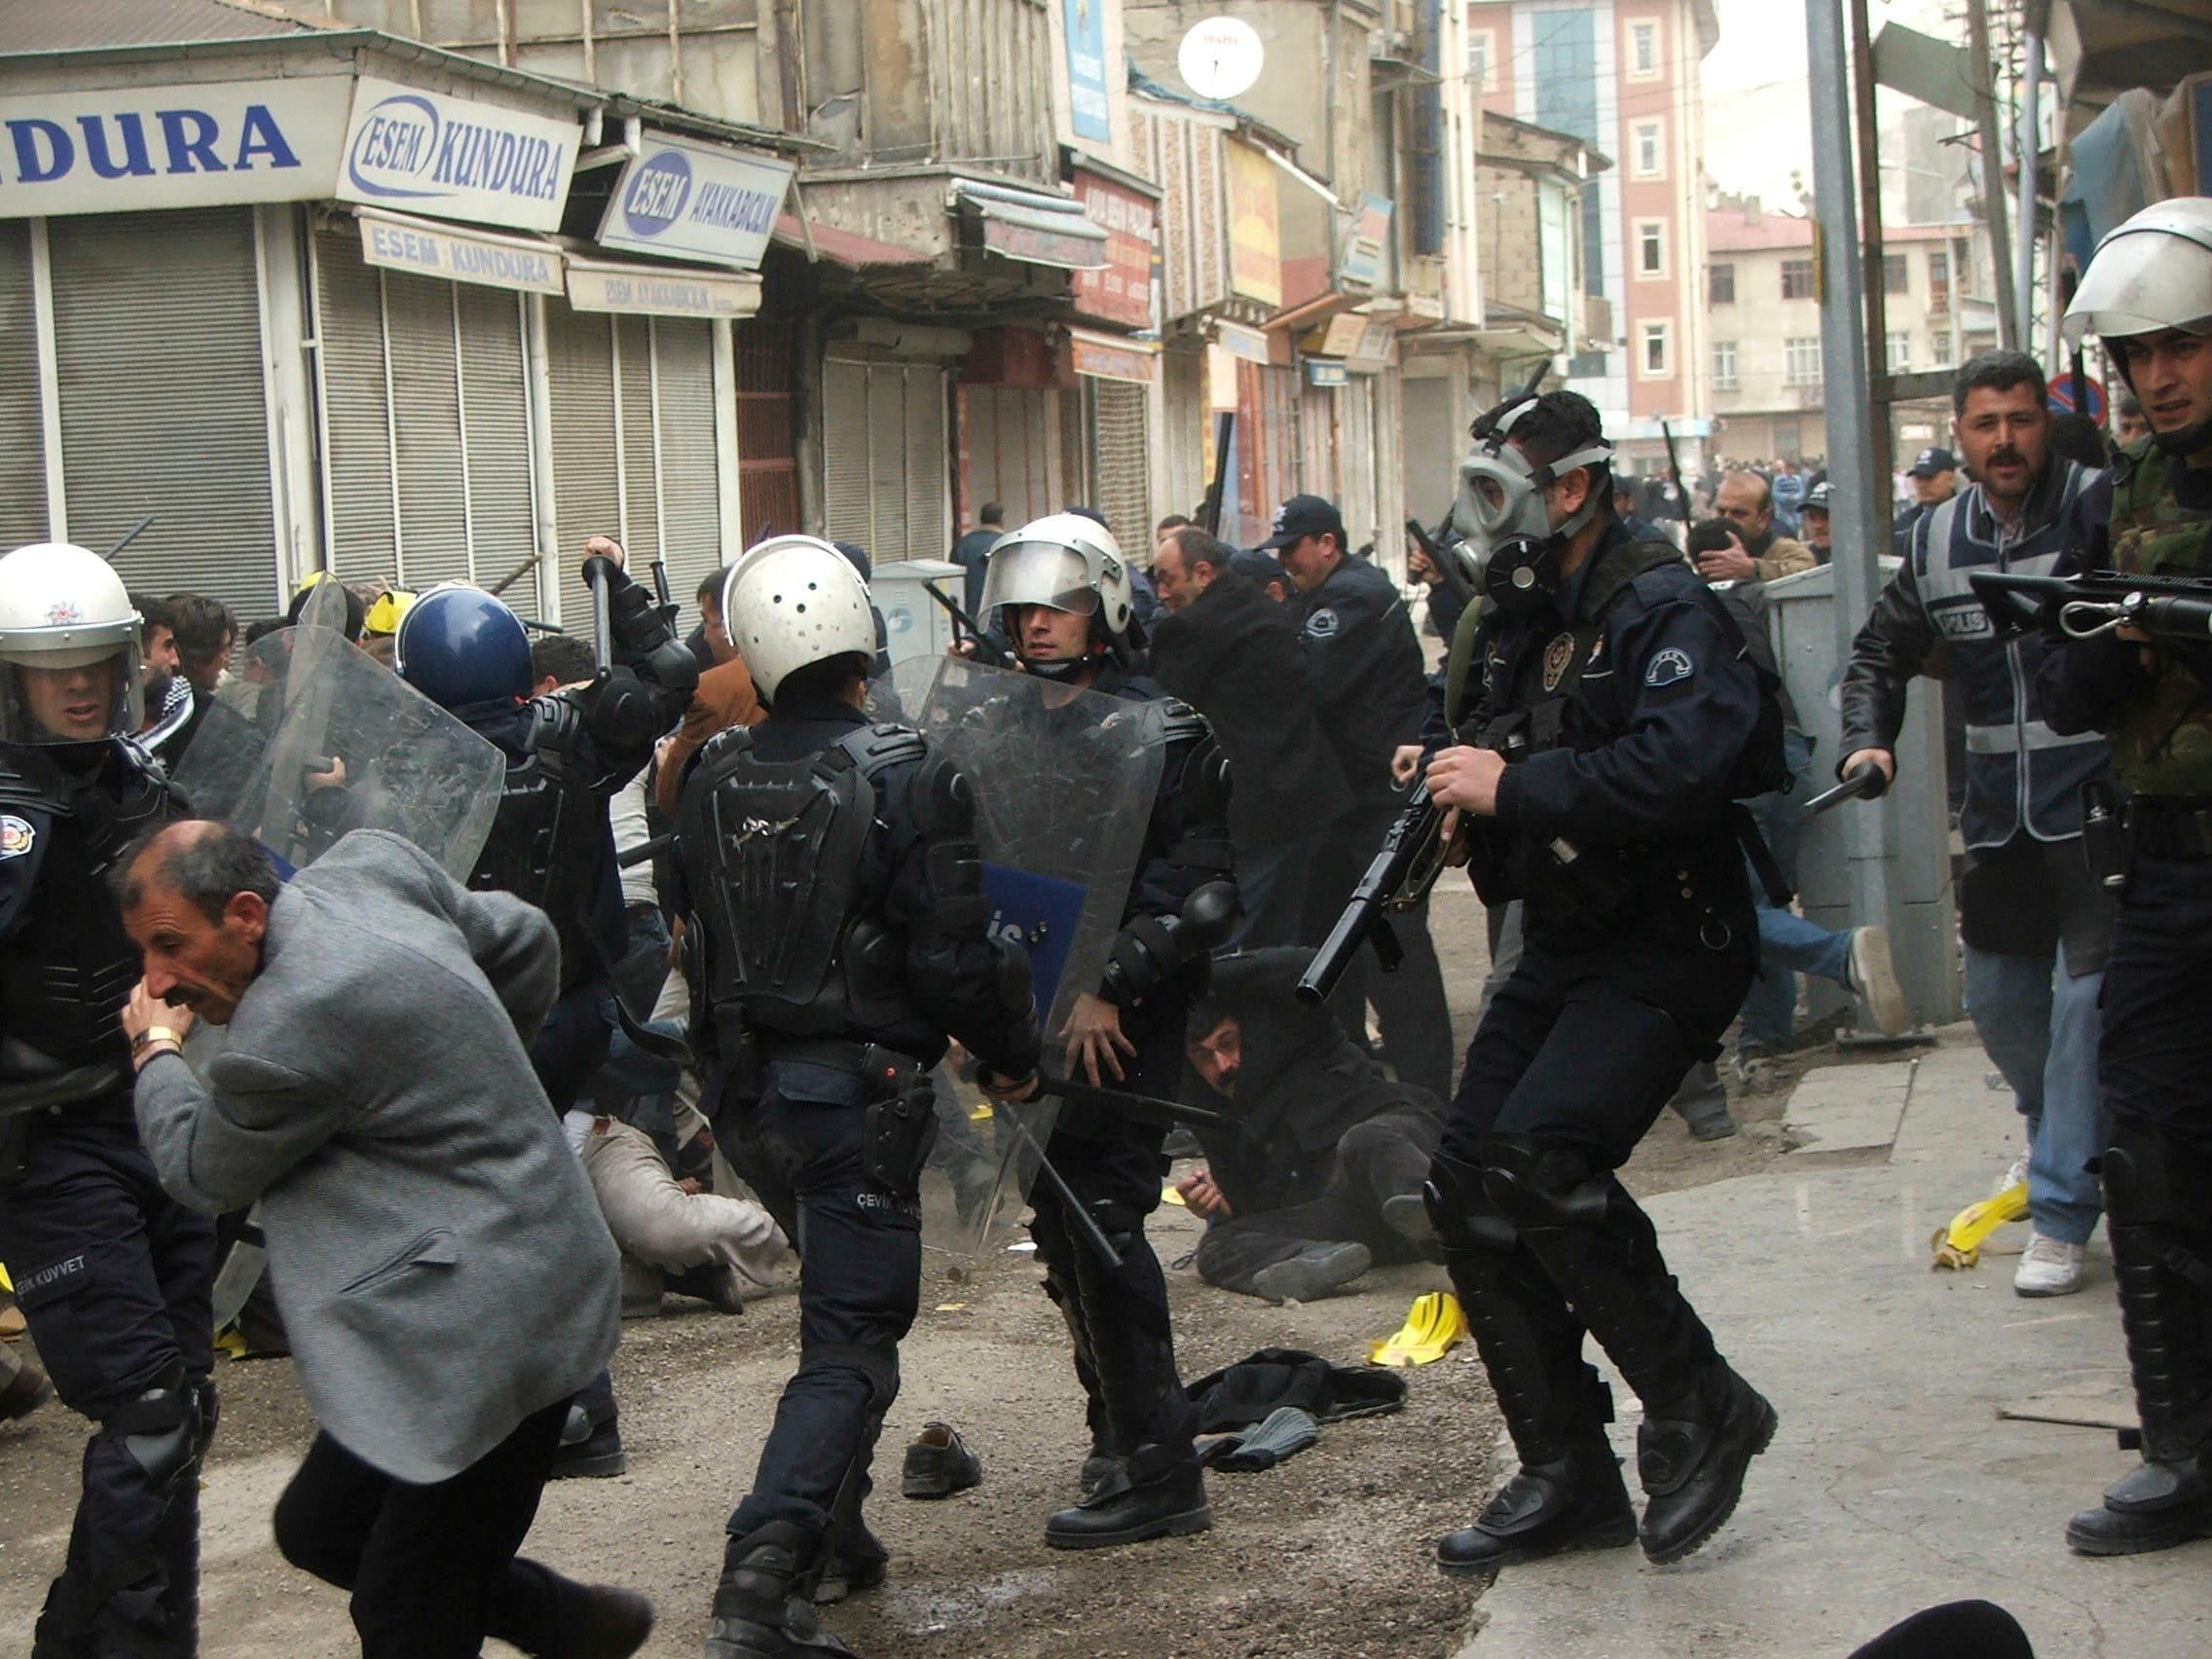 Turkish riot police disperse pro-Kurdish demonstrators in Van, Turkey on March 22, 2008. (File photo: AP)